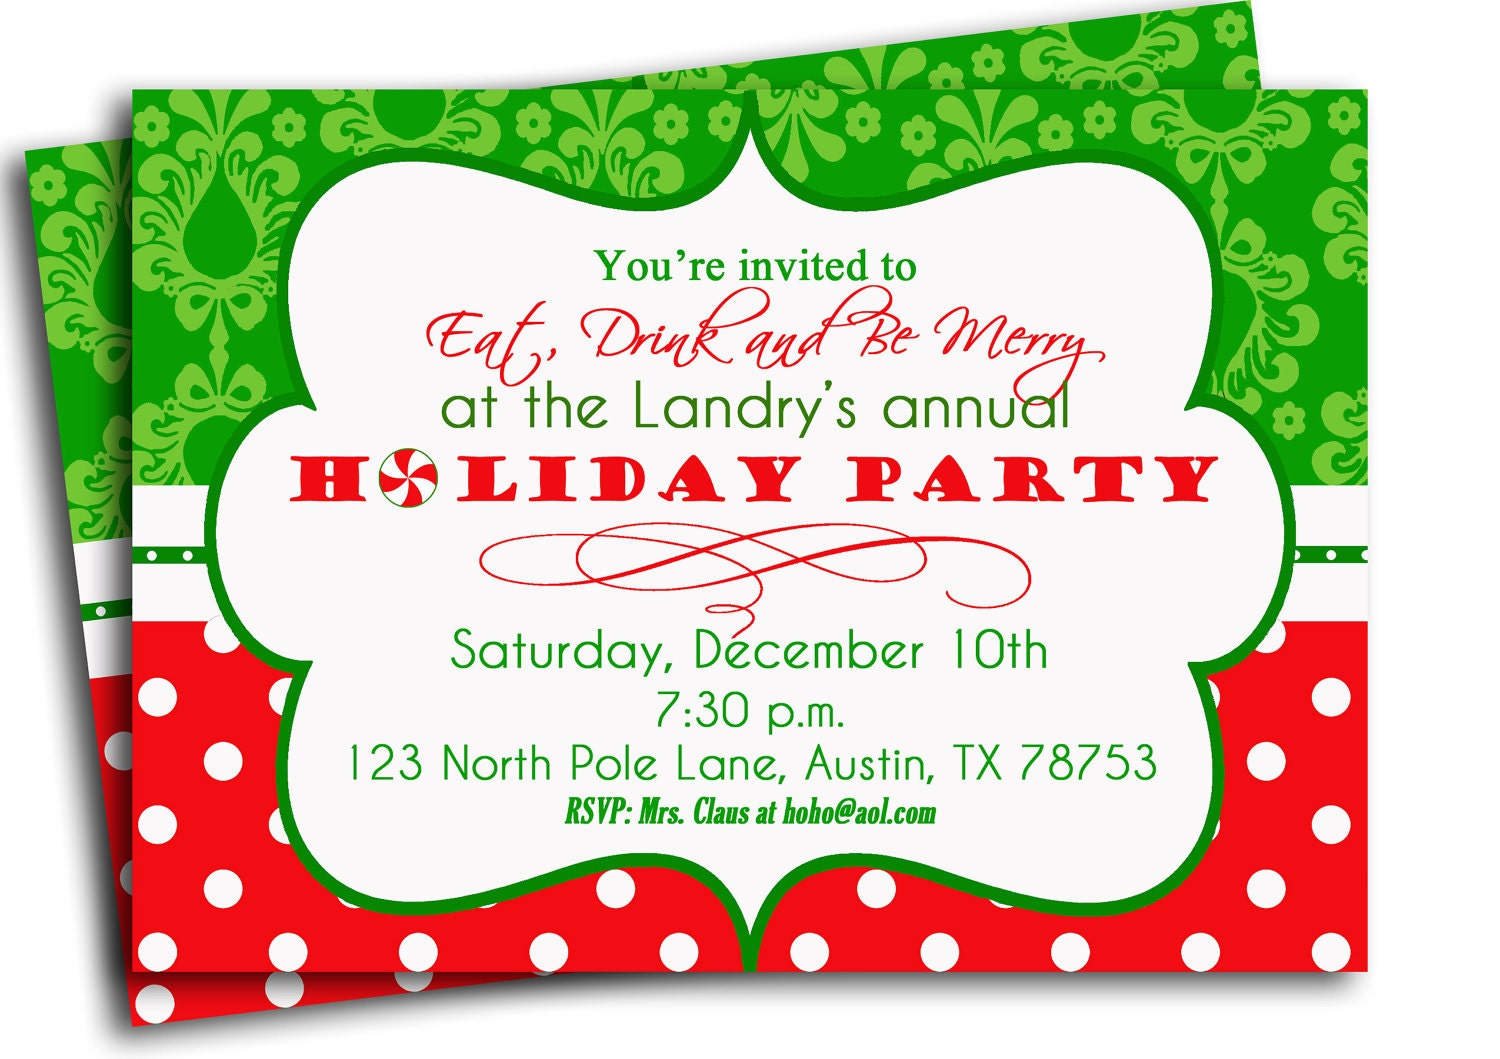 Christmas Party Invitation Printable Traditional Holiday – Invitations to Christmas Party